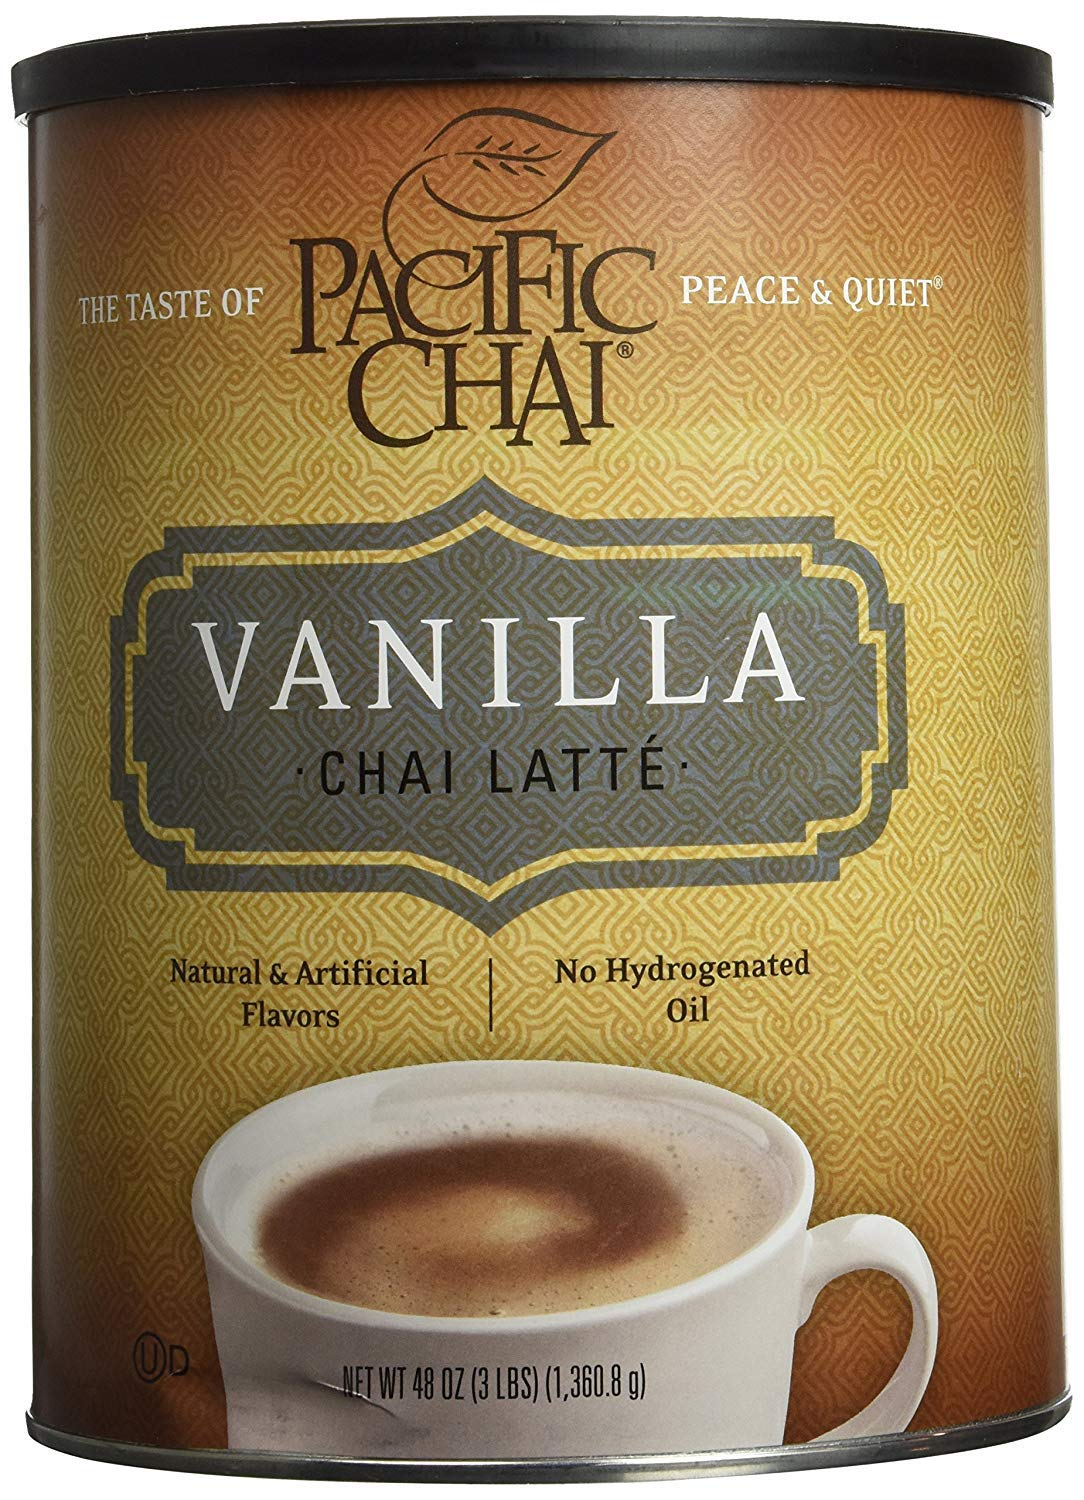 Pacific Chai Vanilla Instant Powdered Chai mix, 48oz canister ( Packaging may vary ) by Pacific Chai